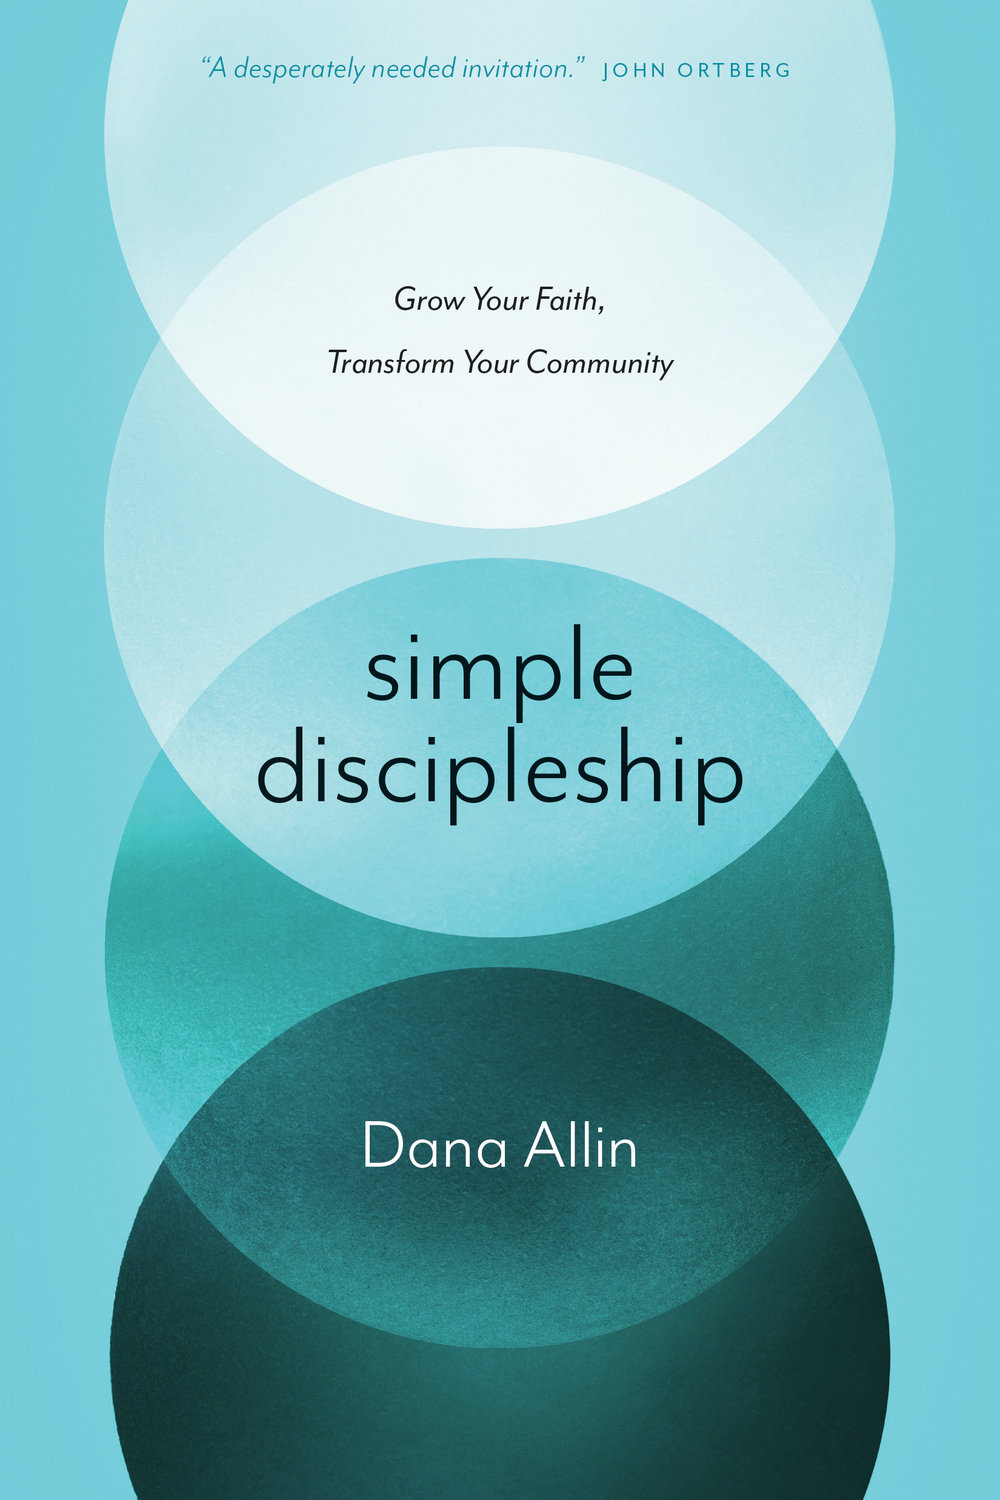 simple discipleship.jpg